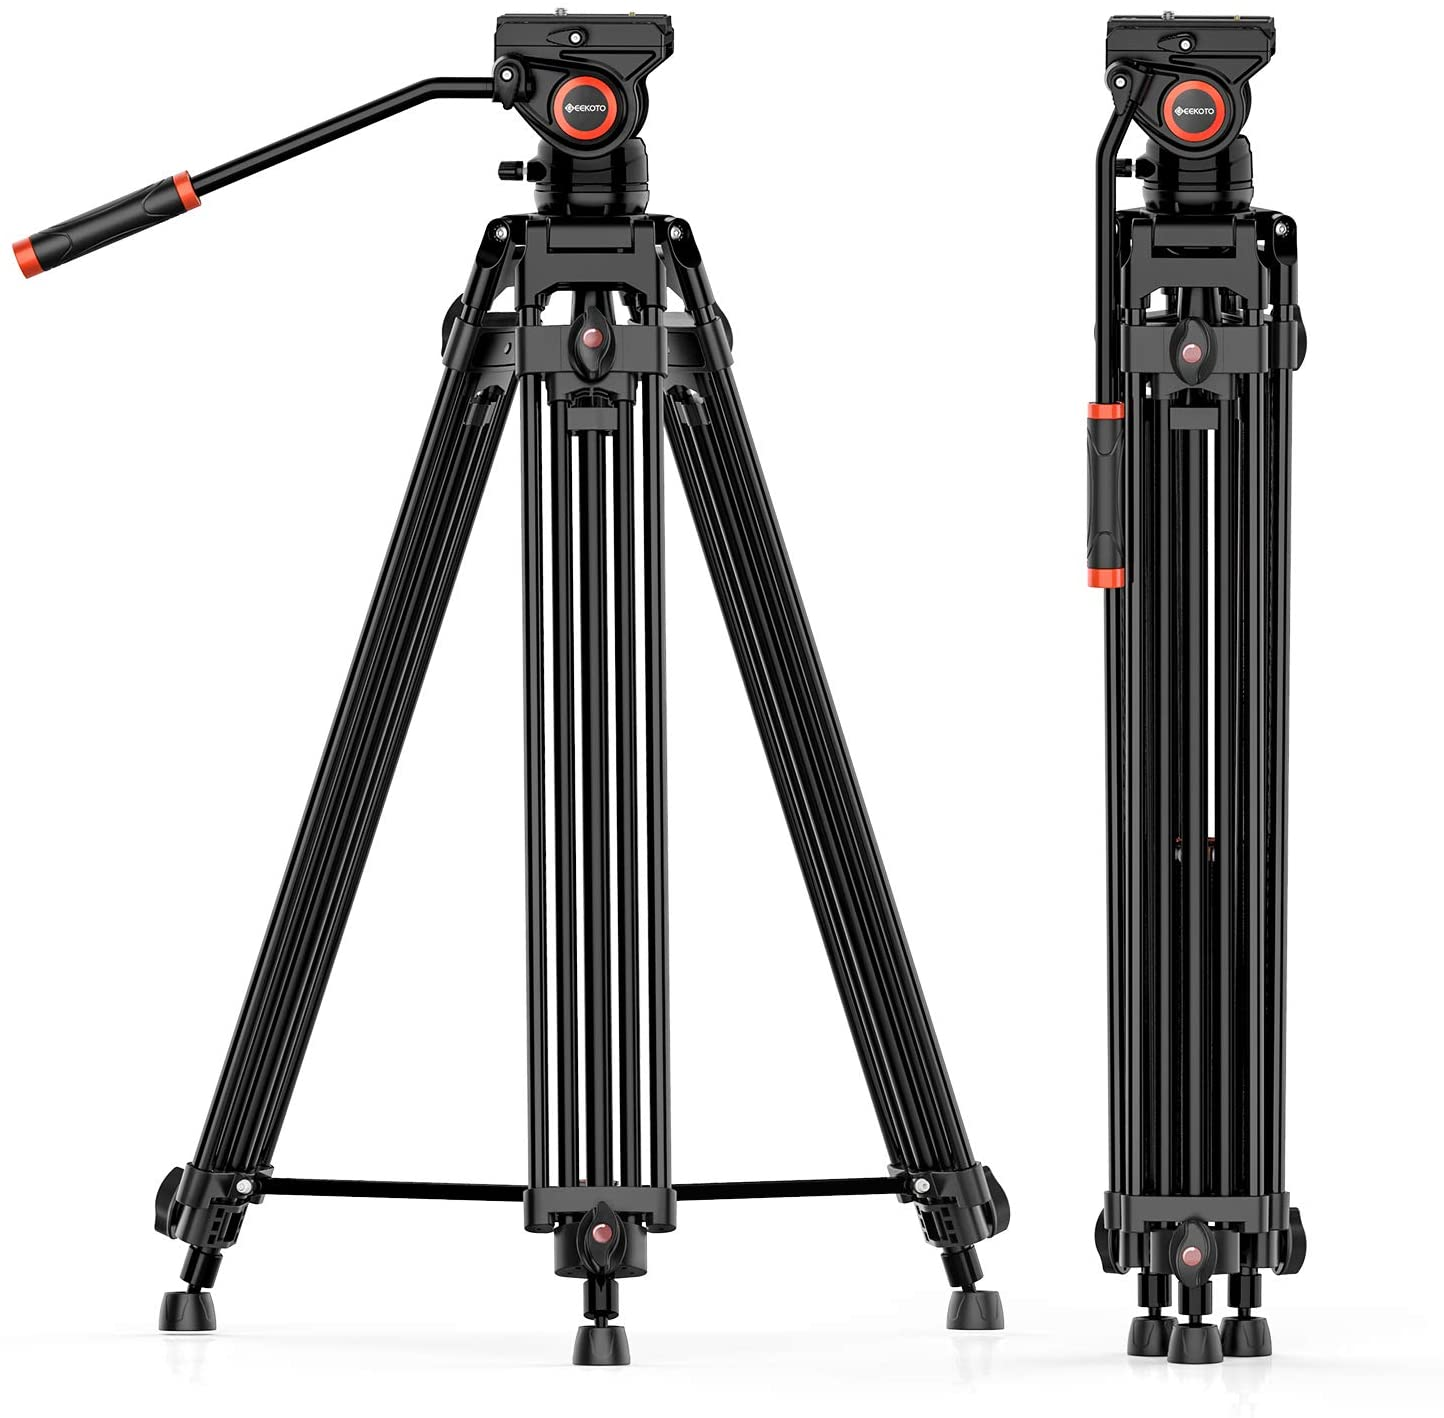 GEEKOTO - Best tripod for Sony A7R IV